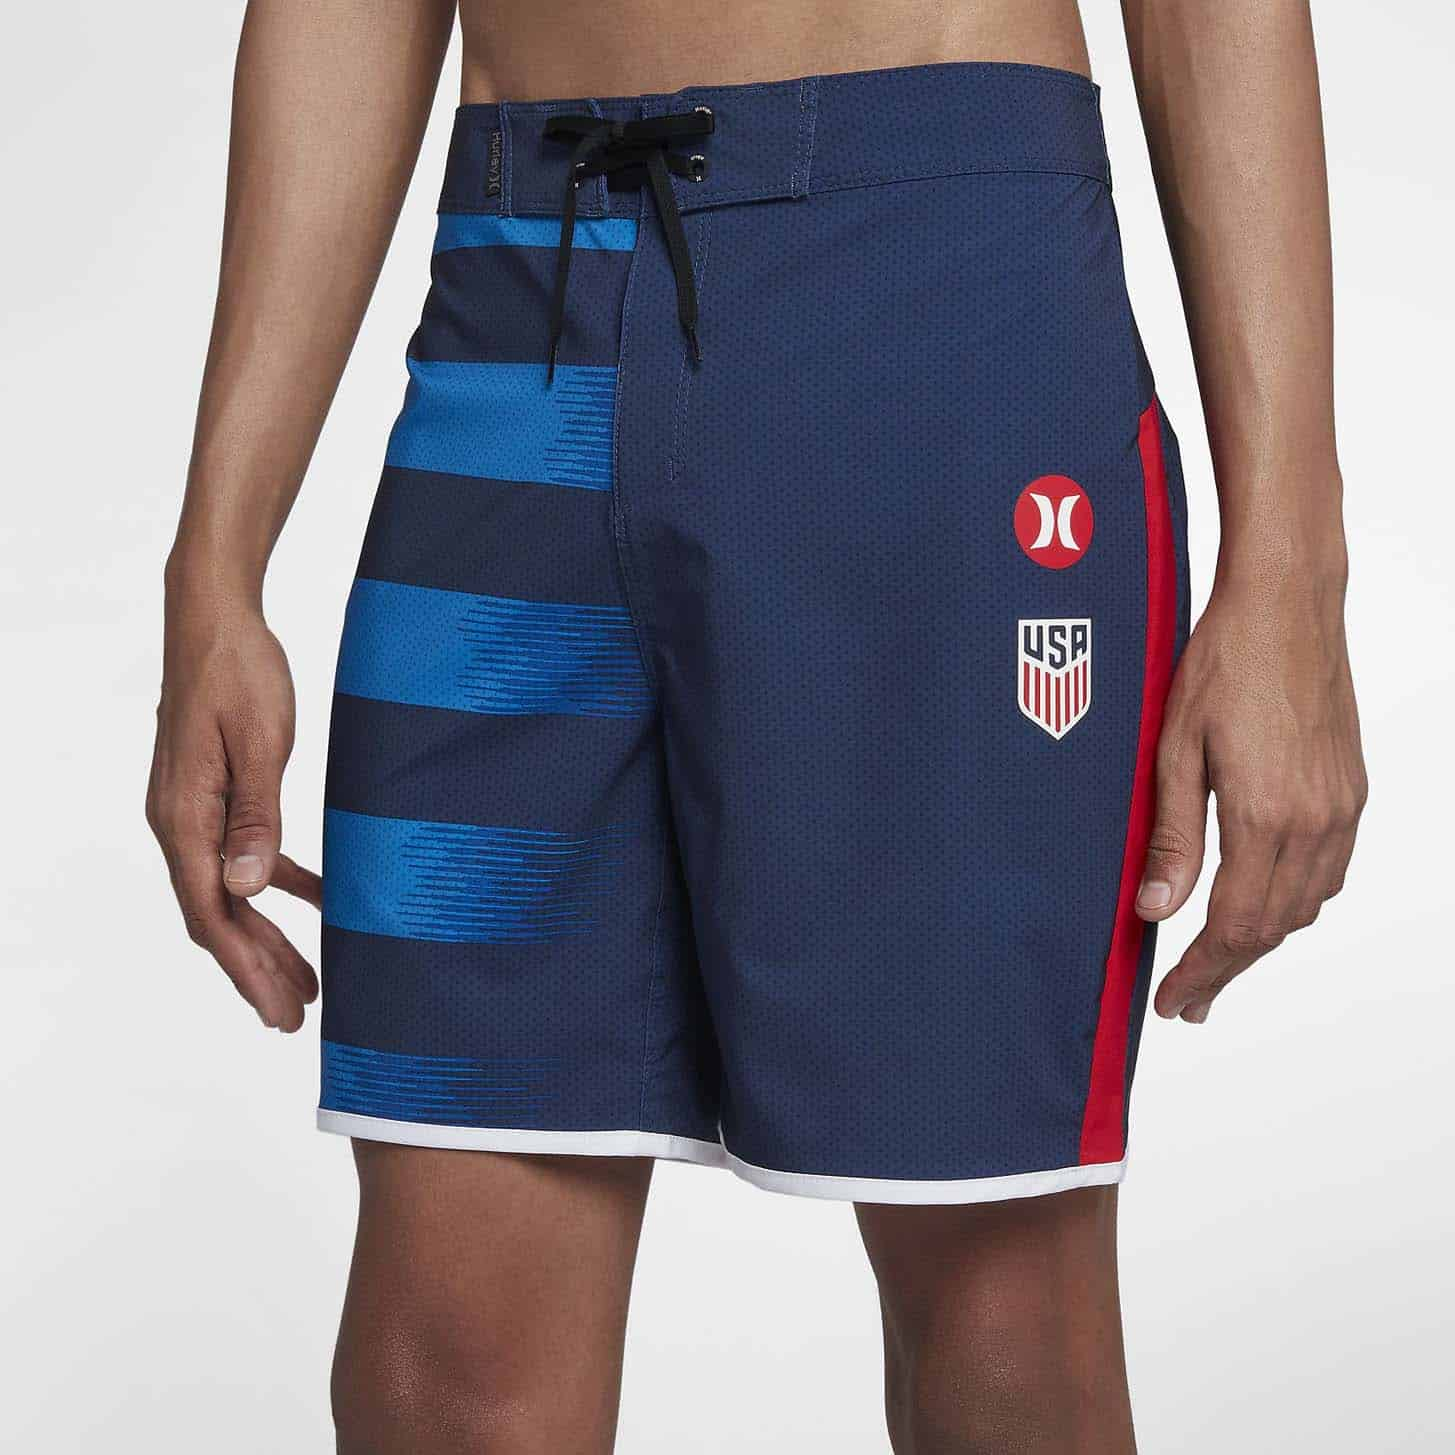 Sportstyle-hurley-board-short-sélections-nationales-coupe-monde-2018-mai-2018-5